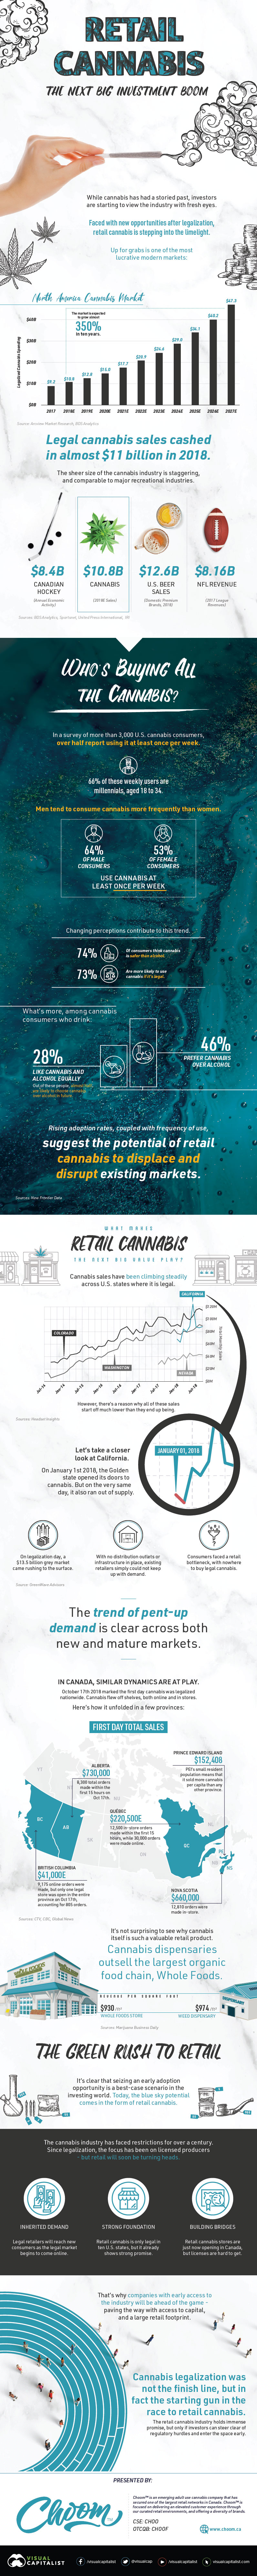 Retail Cannabis Investment Boom